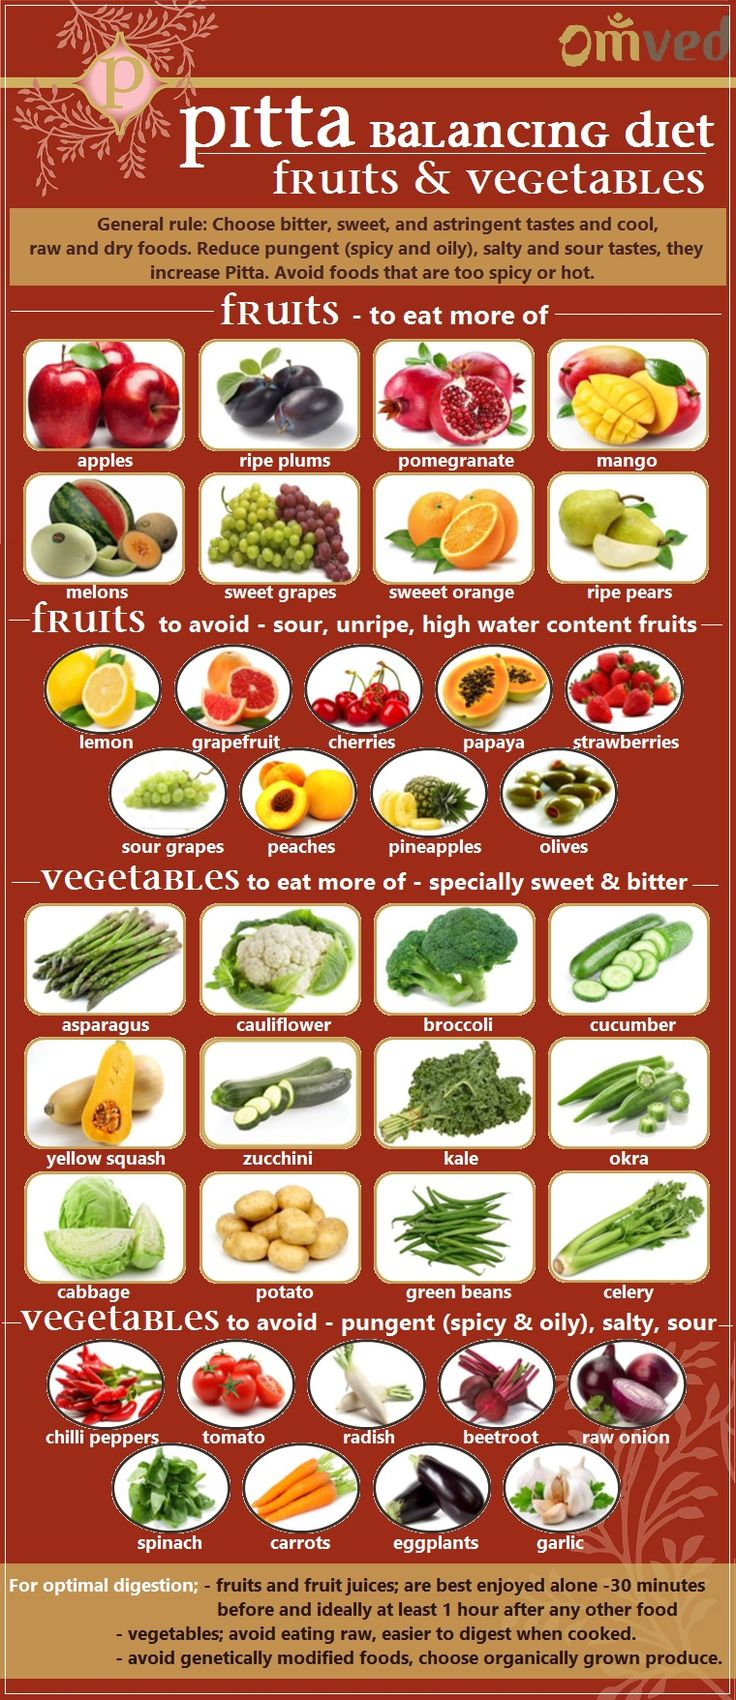 PITTAA Fruits & Vegetables - Ayurveda states that a person should choose his diet depending on his dosha. So, a person in whom the Pitta dosha is dominant should eat diet, which will pacify the Pitta dosha. Here are some suggestions on which fruits and veggies to include and which to avoid in a Pitta balancing diet.